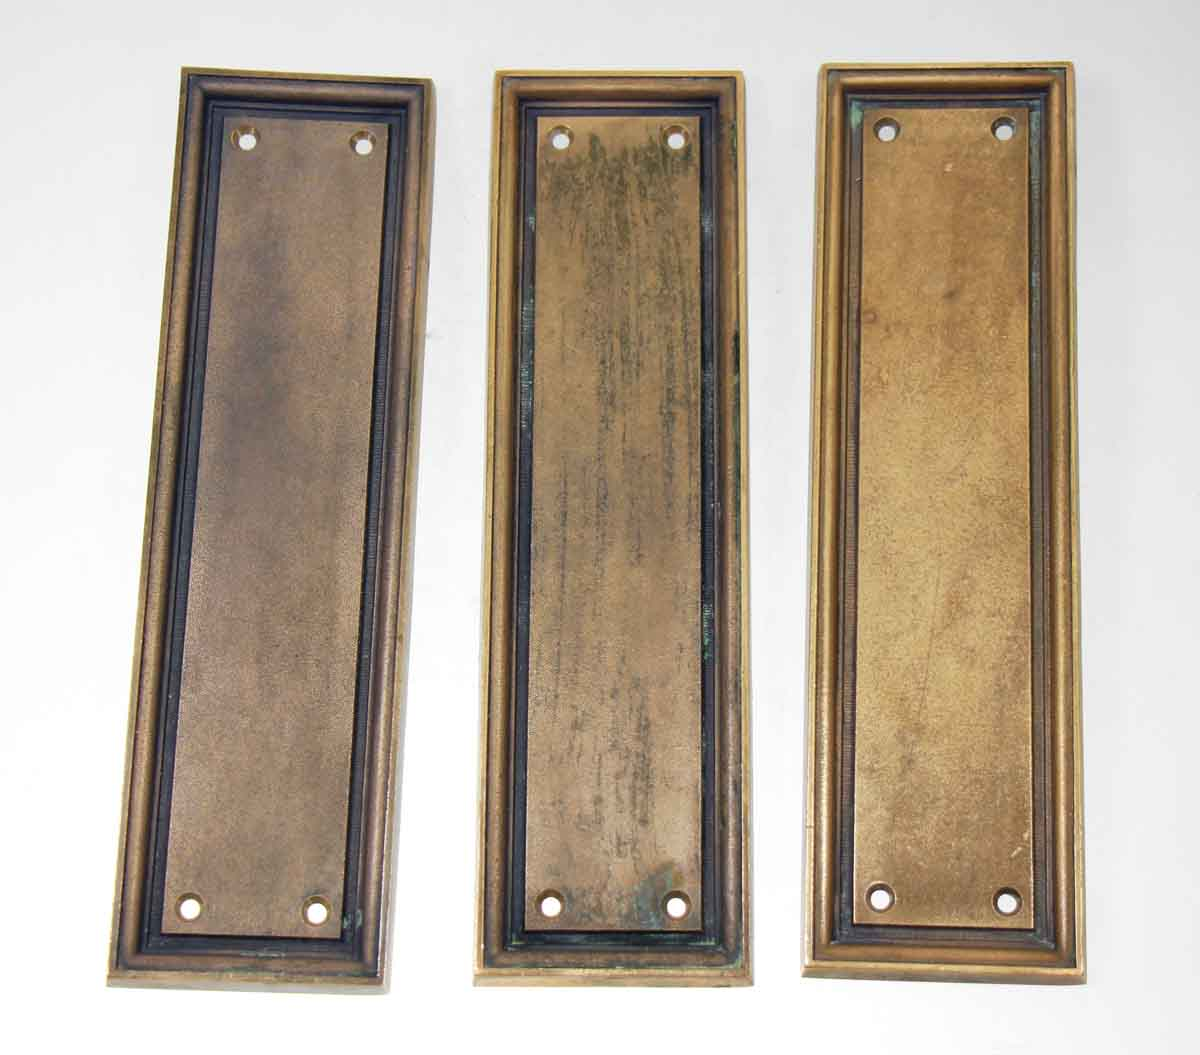 Cast Bronze Push Plates with Simple Lines